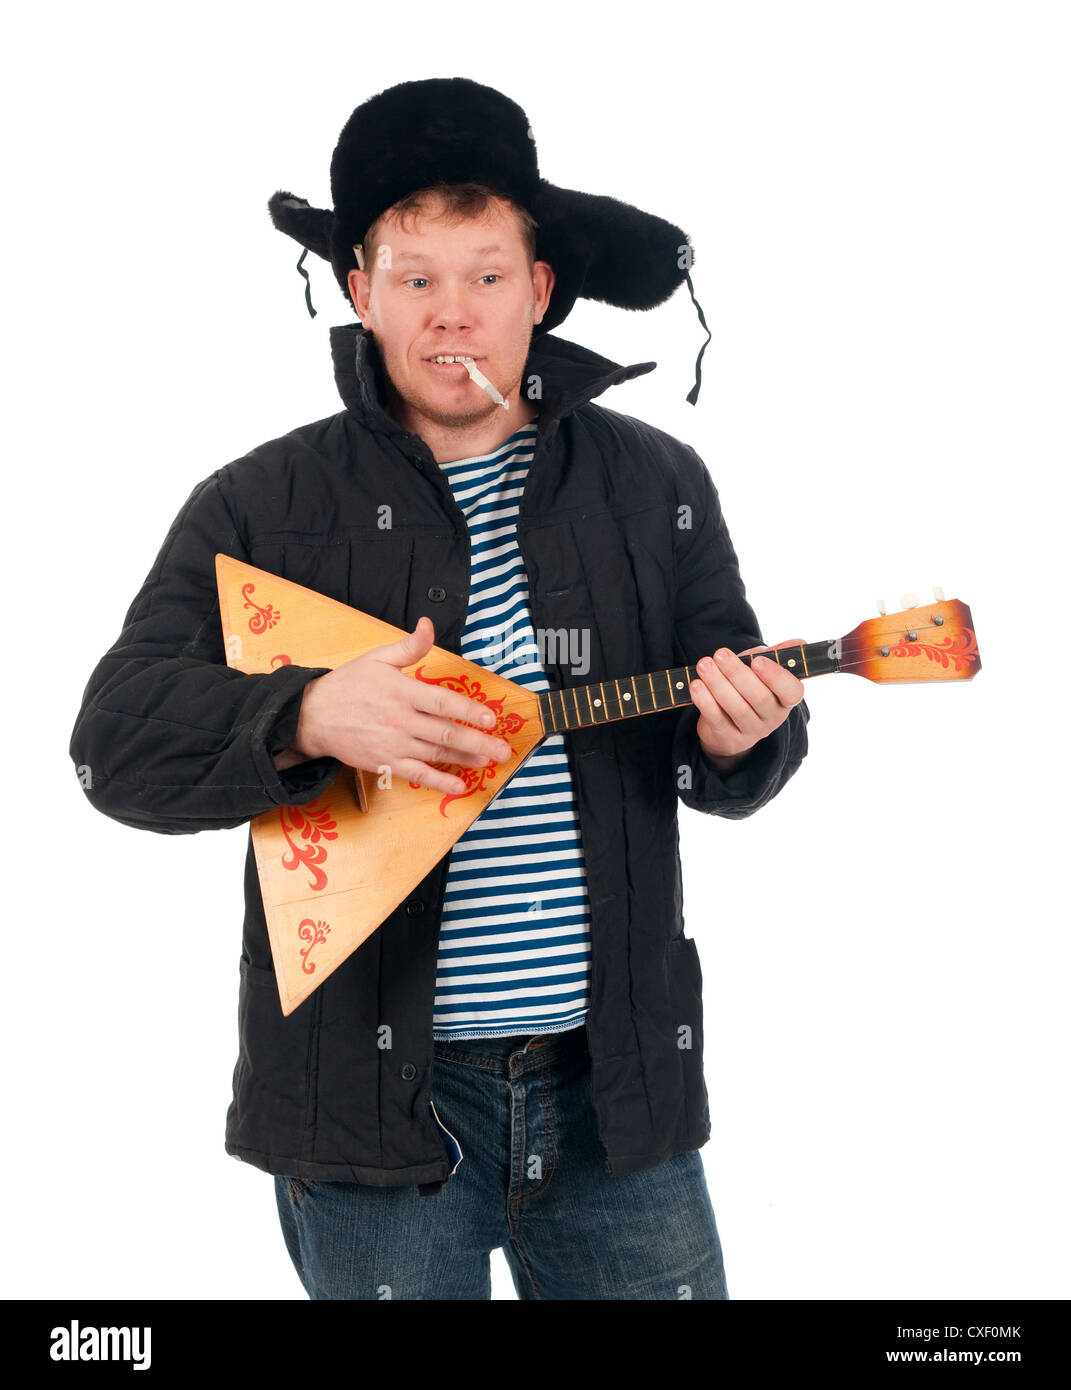 Russian man with balalaika - Stock Image